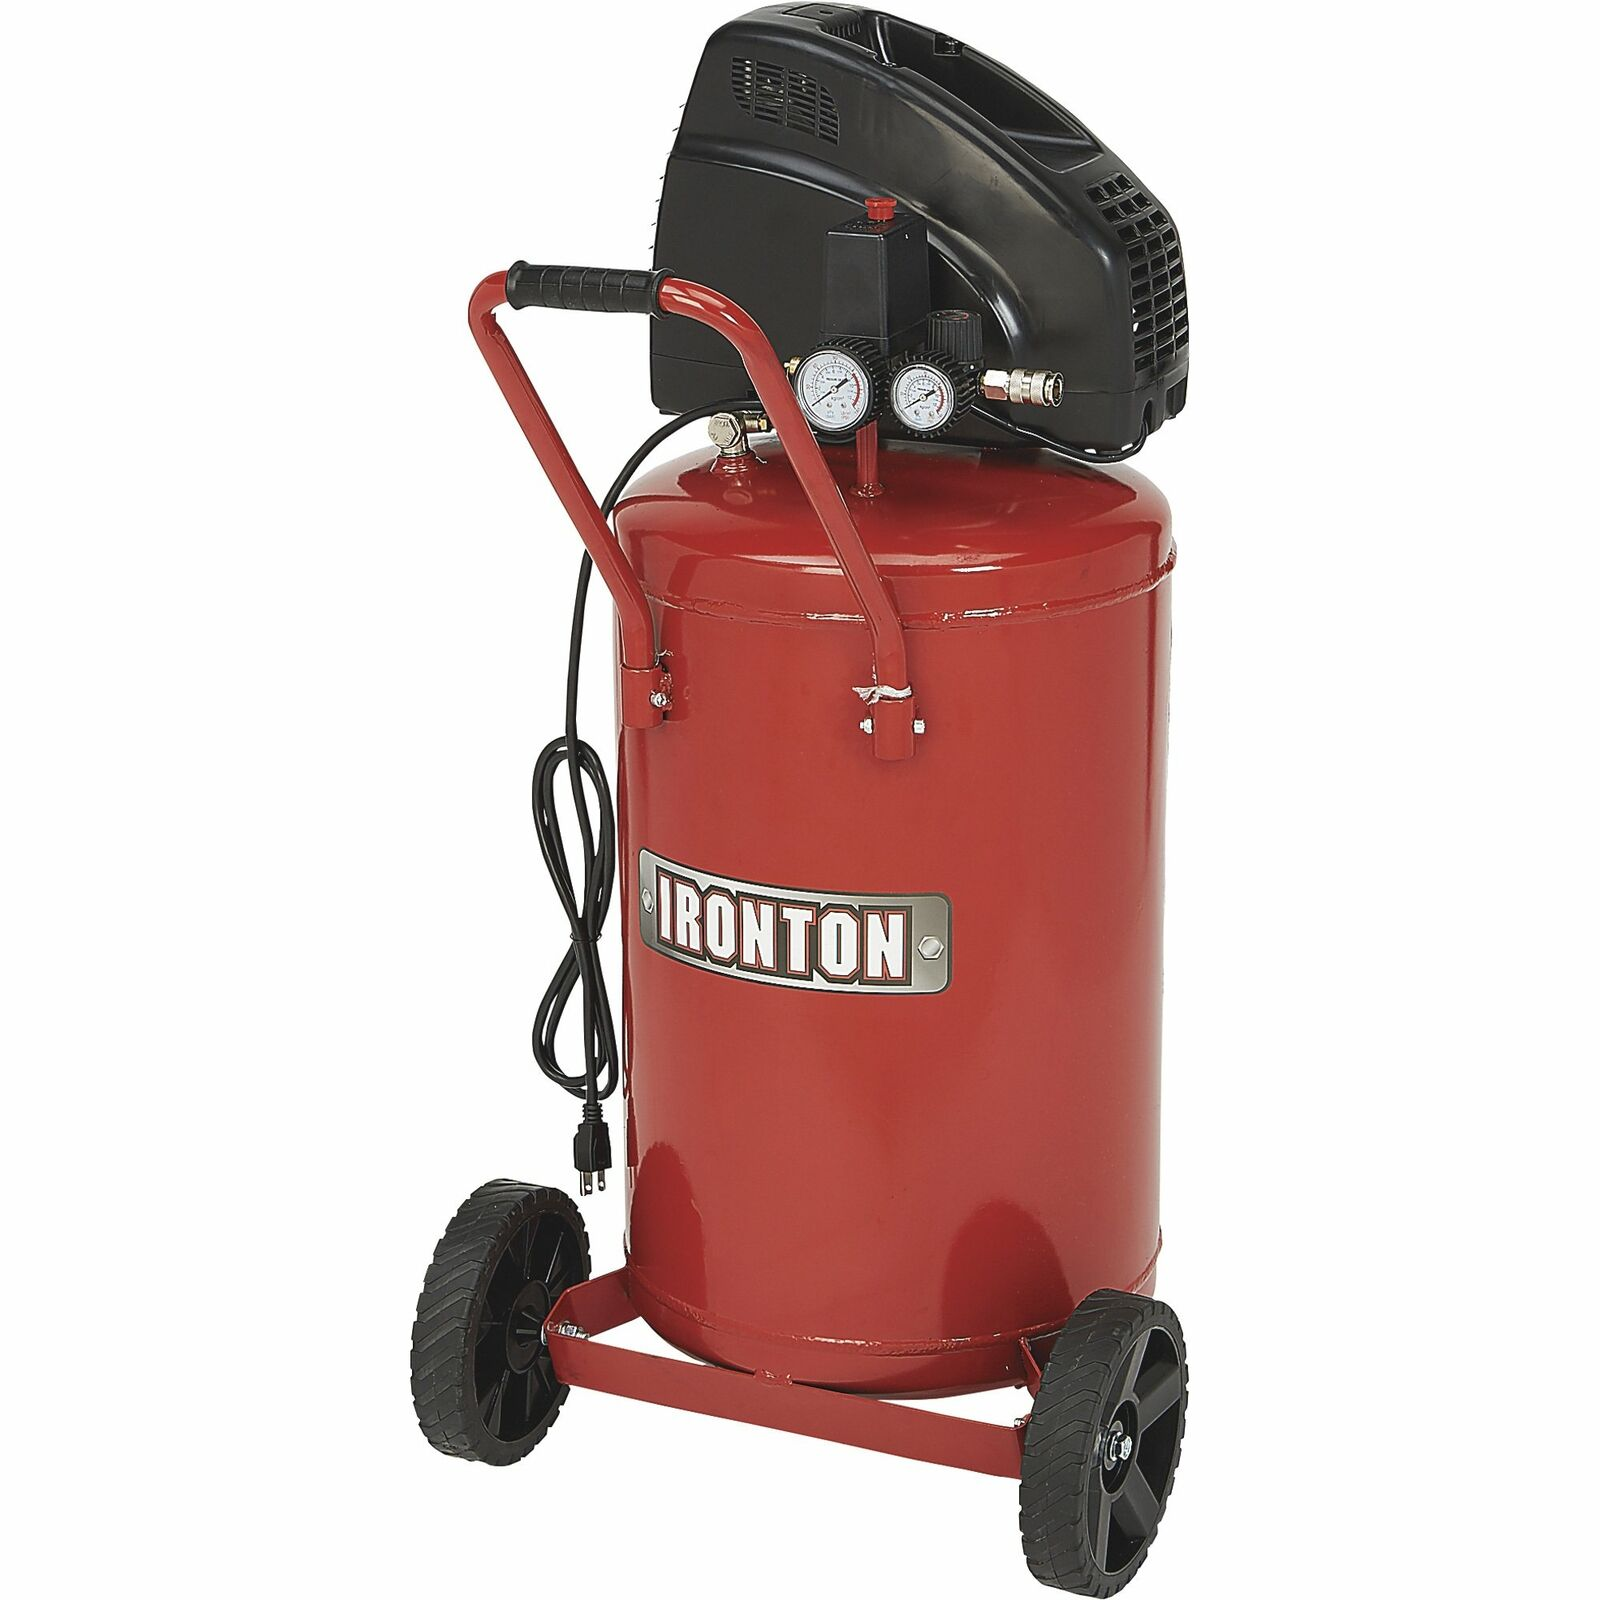 Ironton Portable Electric Air Compressor - 1.5 HP, 20 Gallon Vertical Tank. Buy it now for 184.99